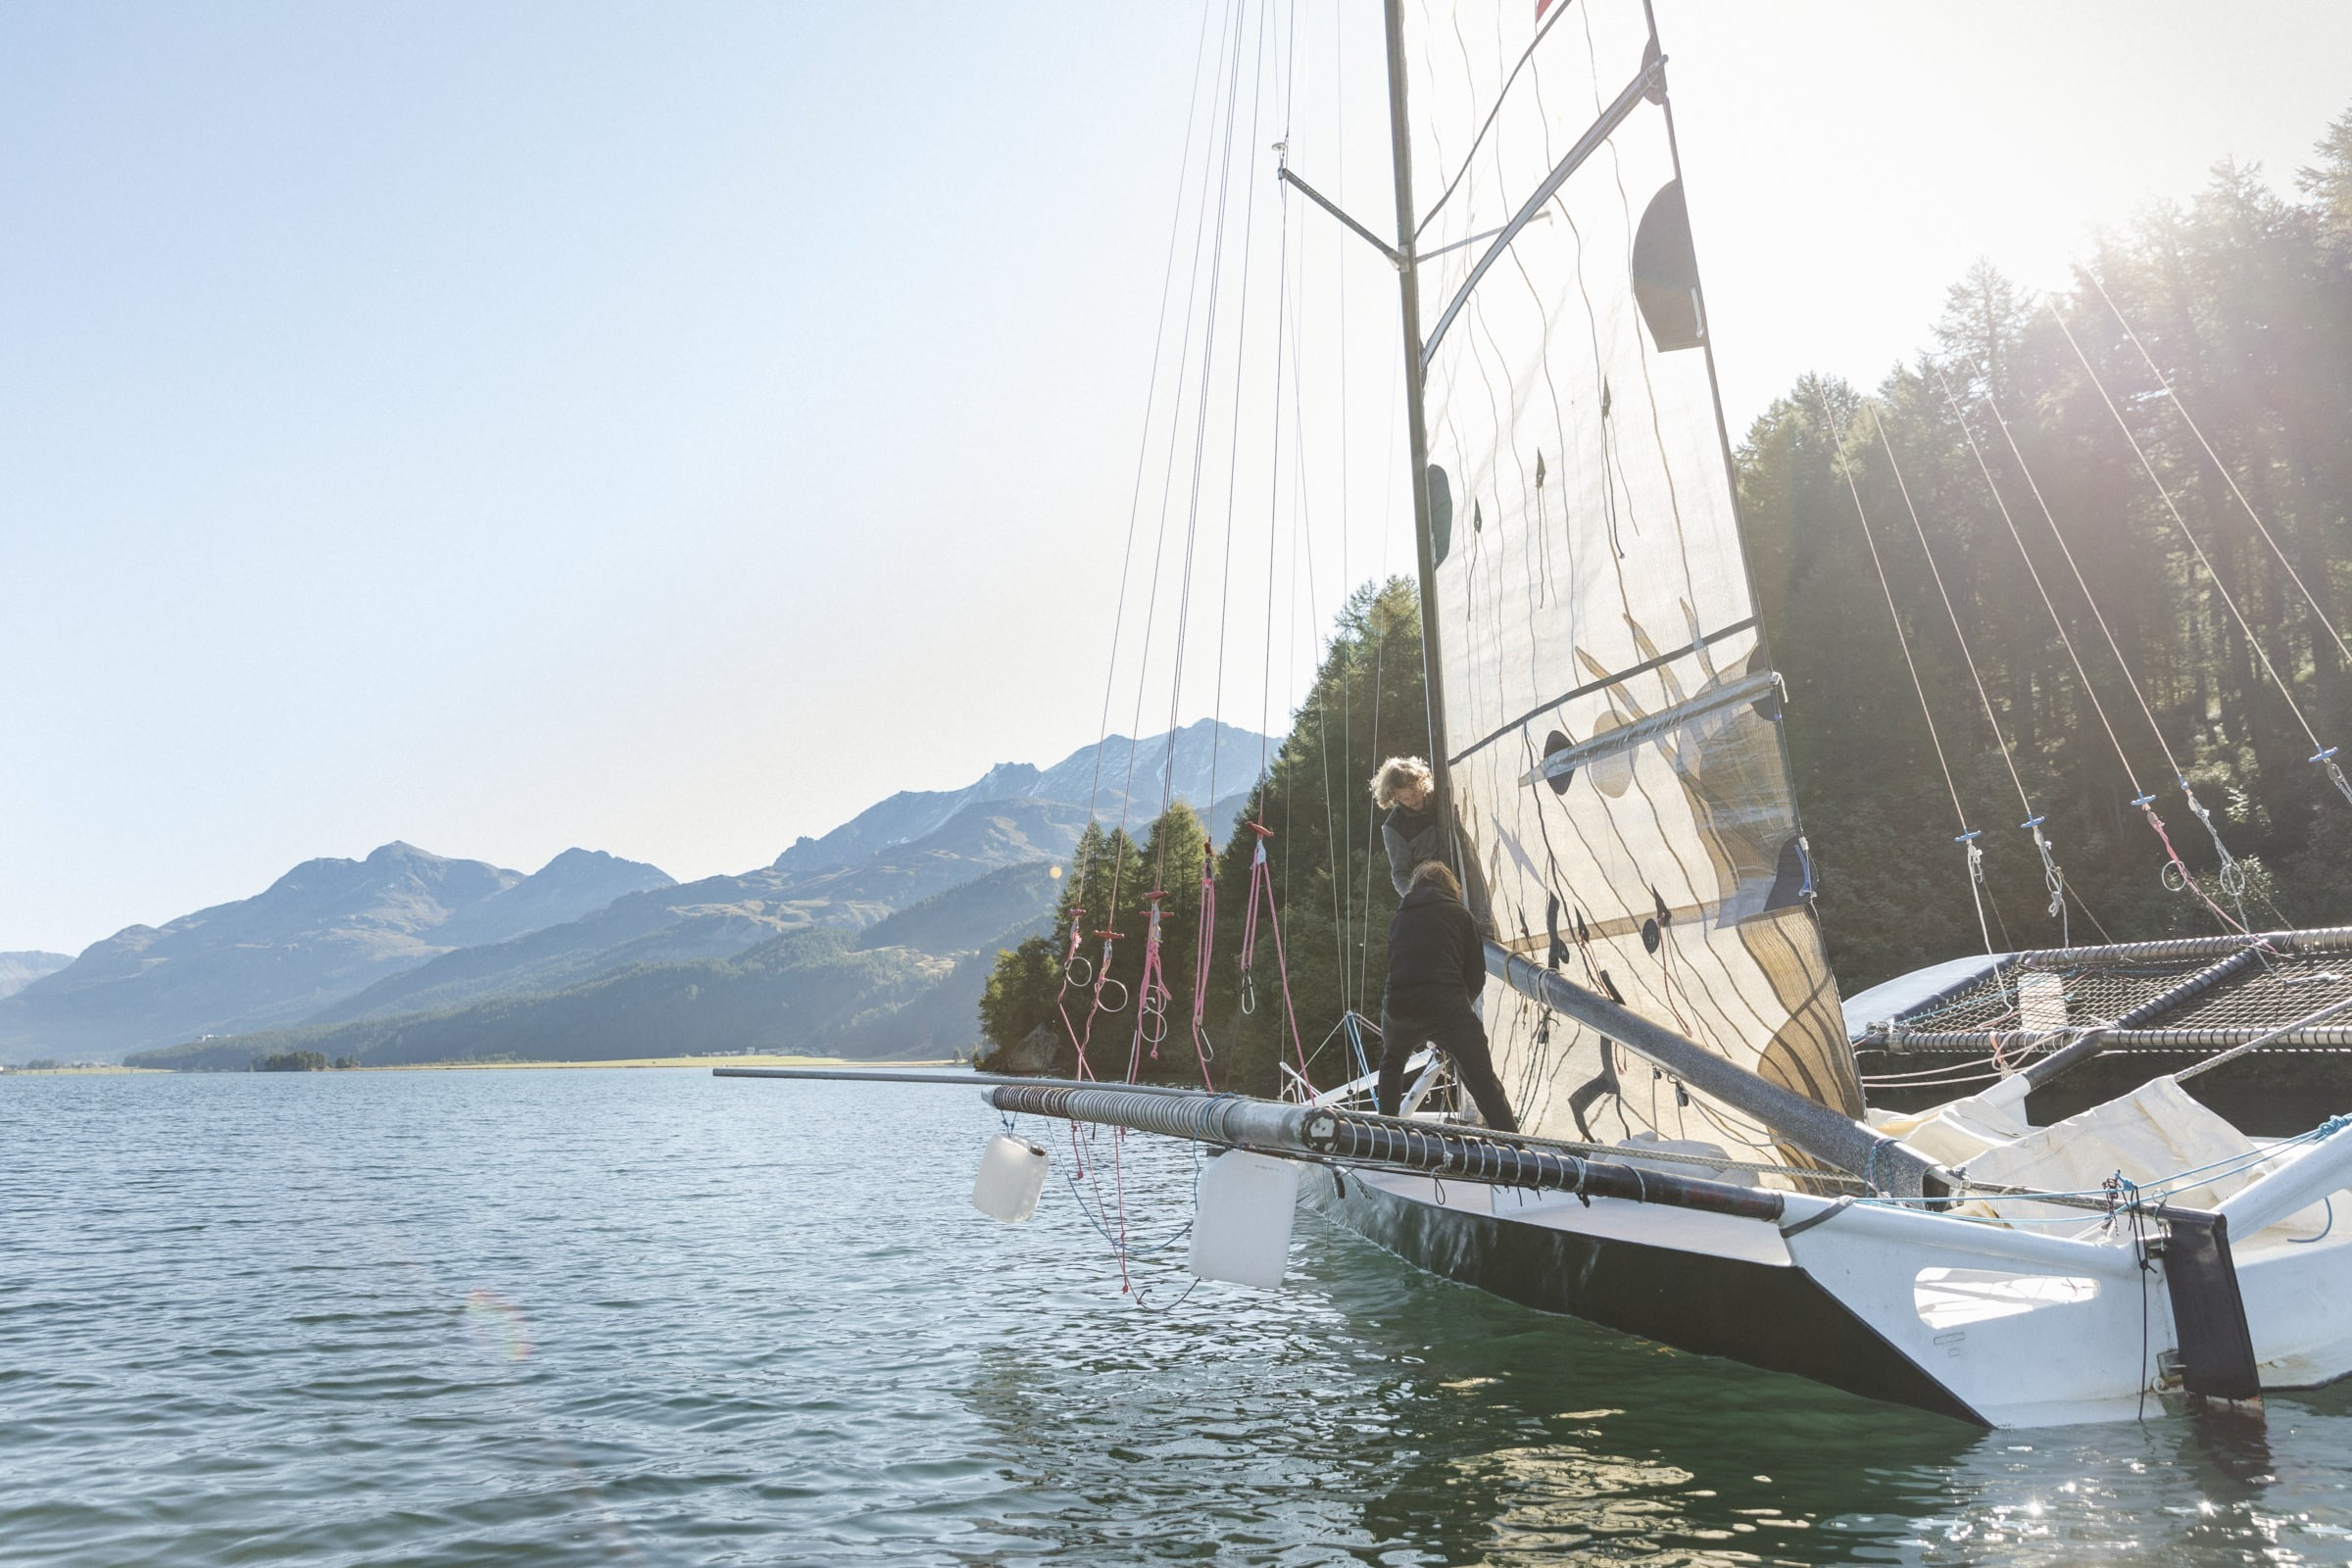 Watersports in Engadin